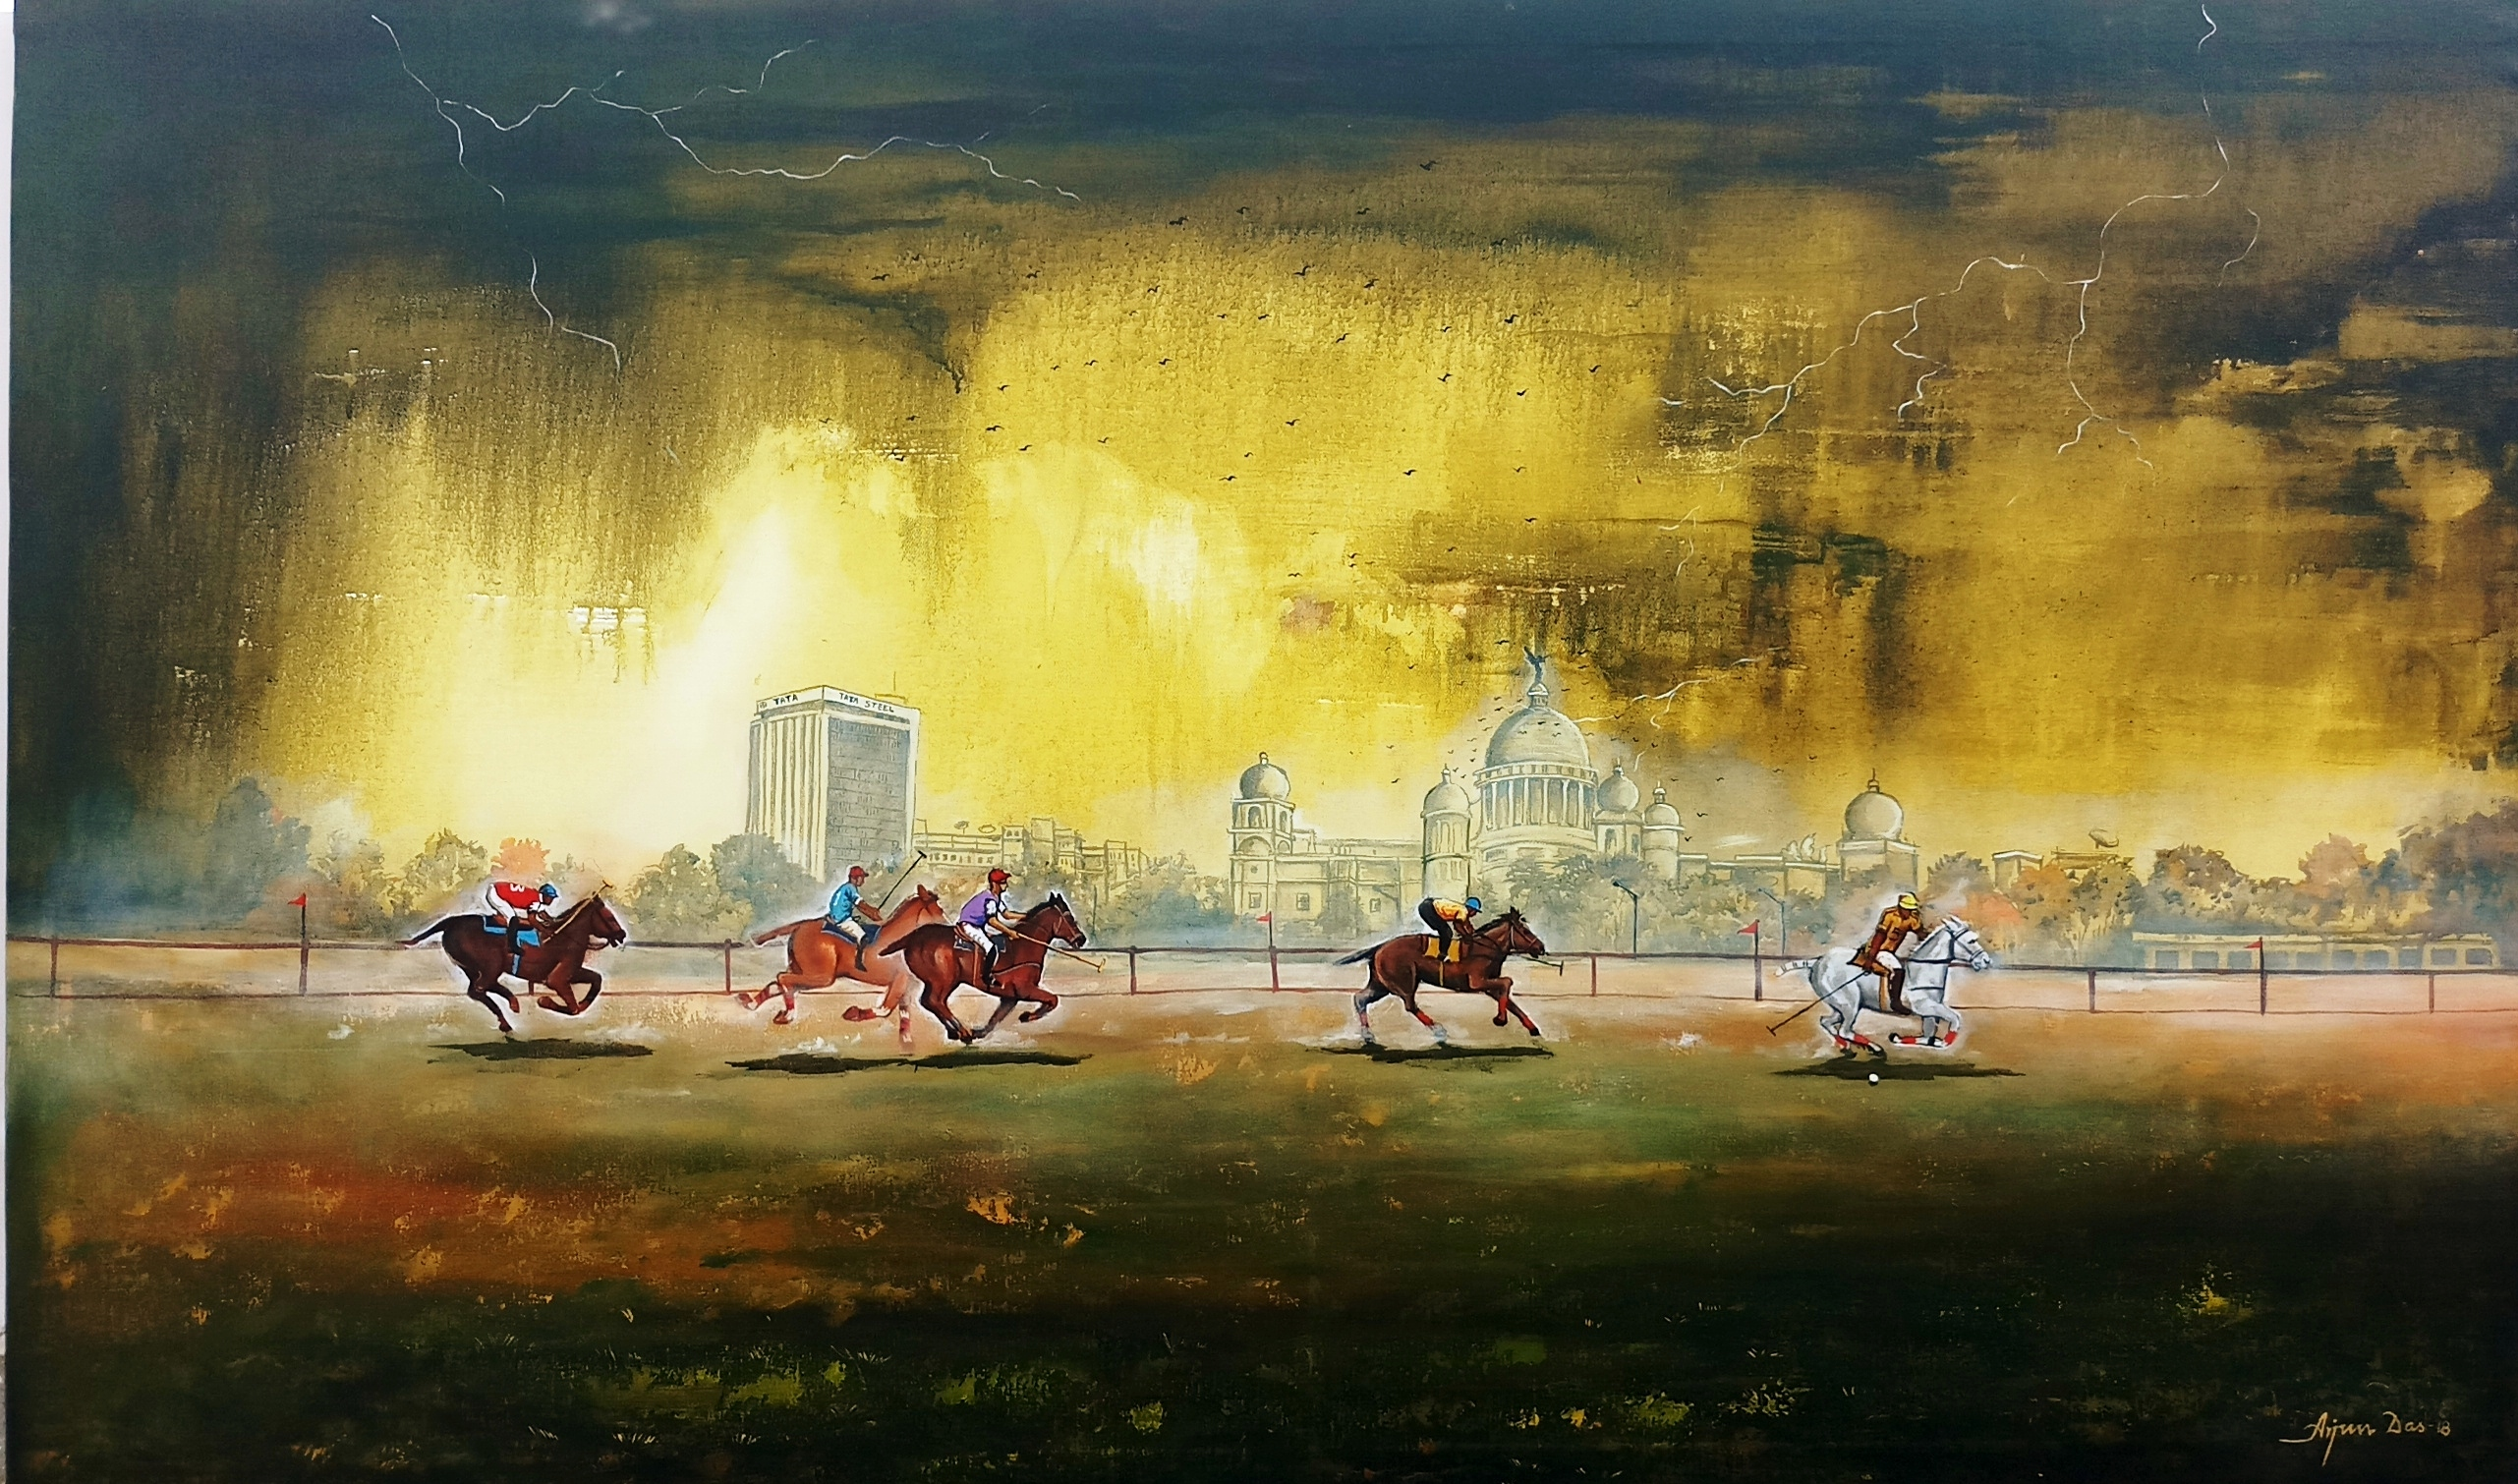 kolkata Polo Club 14805